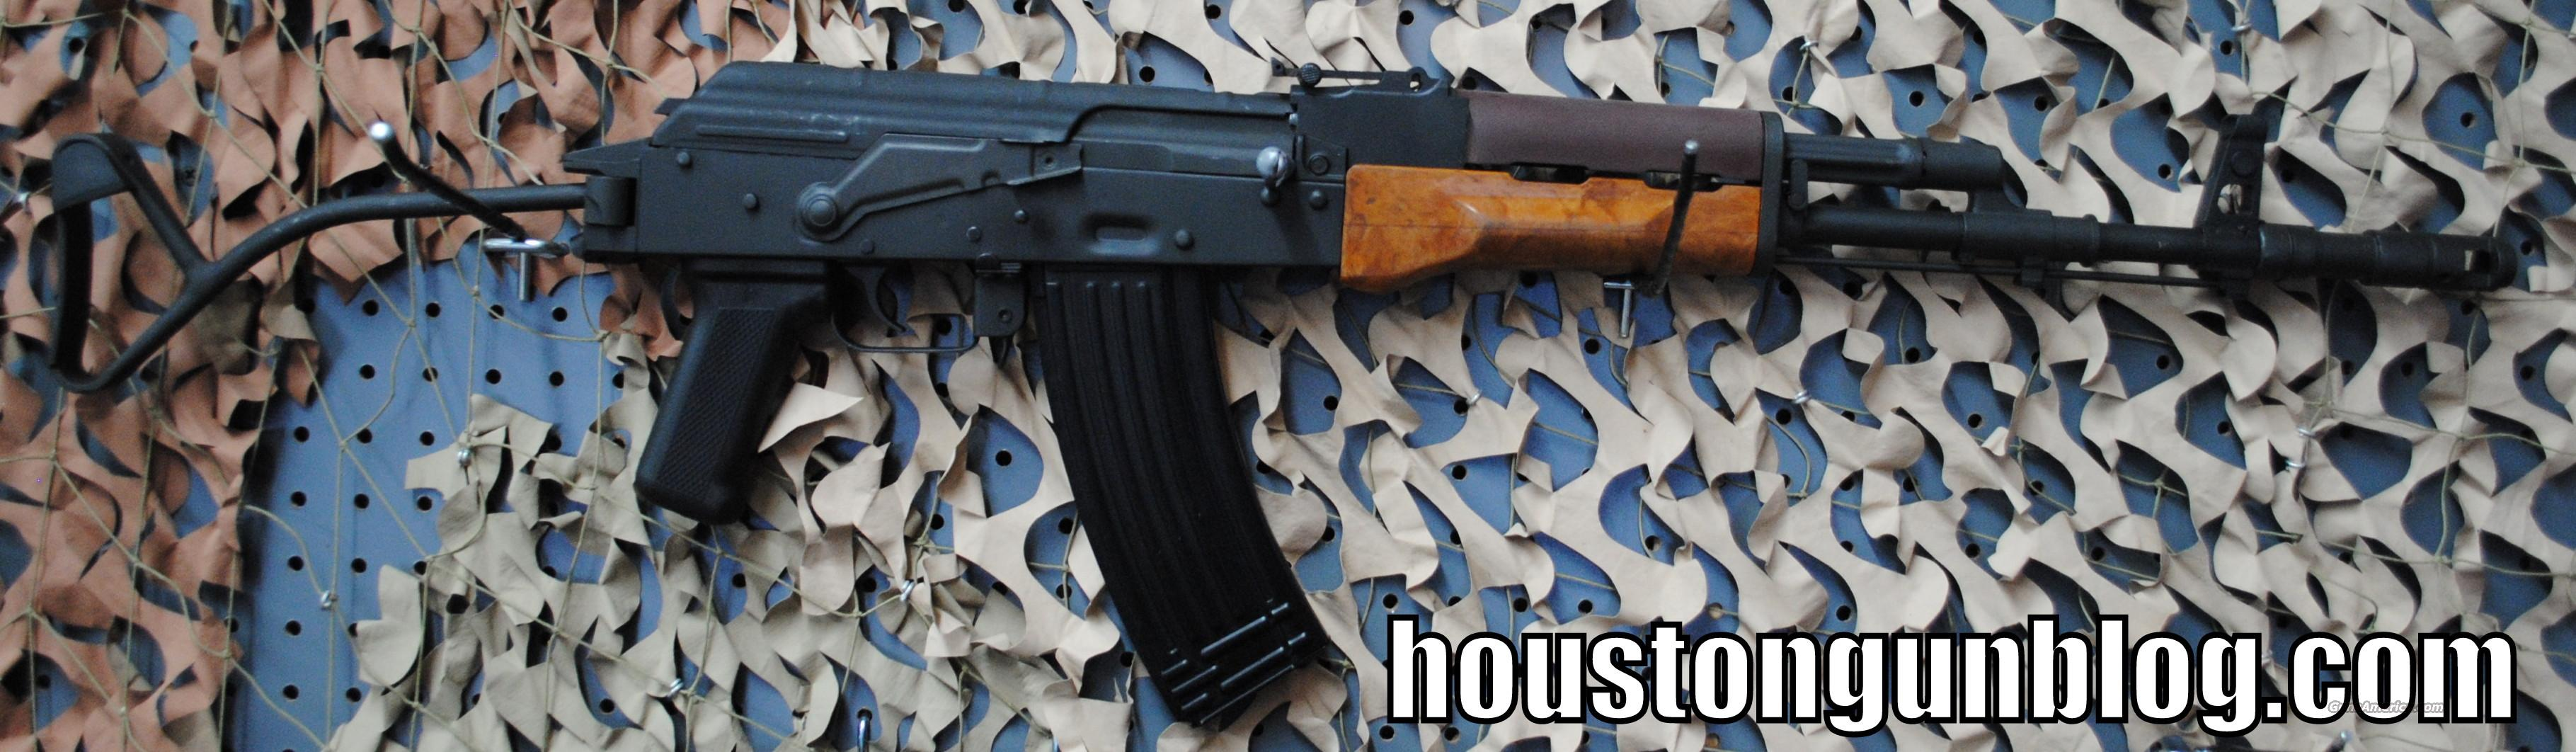 Century Arms AK-74 5.45 Tantal Side Folder NIB  Guns > Rifles > Century International Arms - Rifles > Rifles